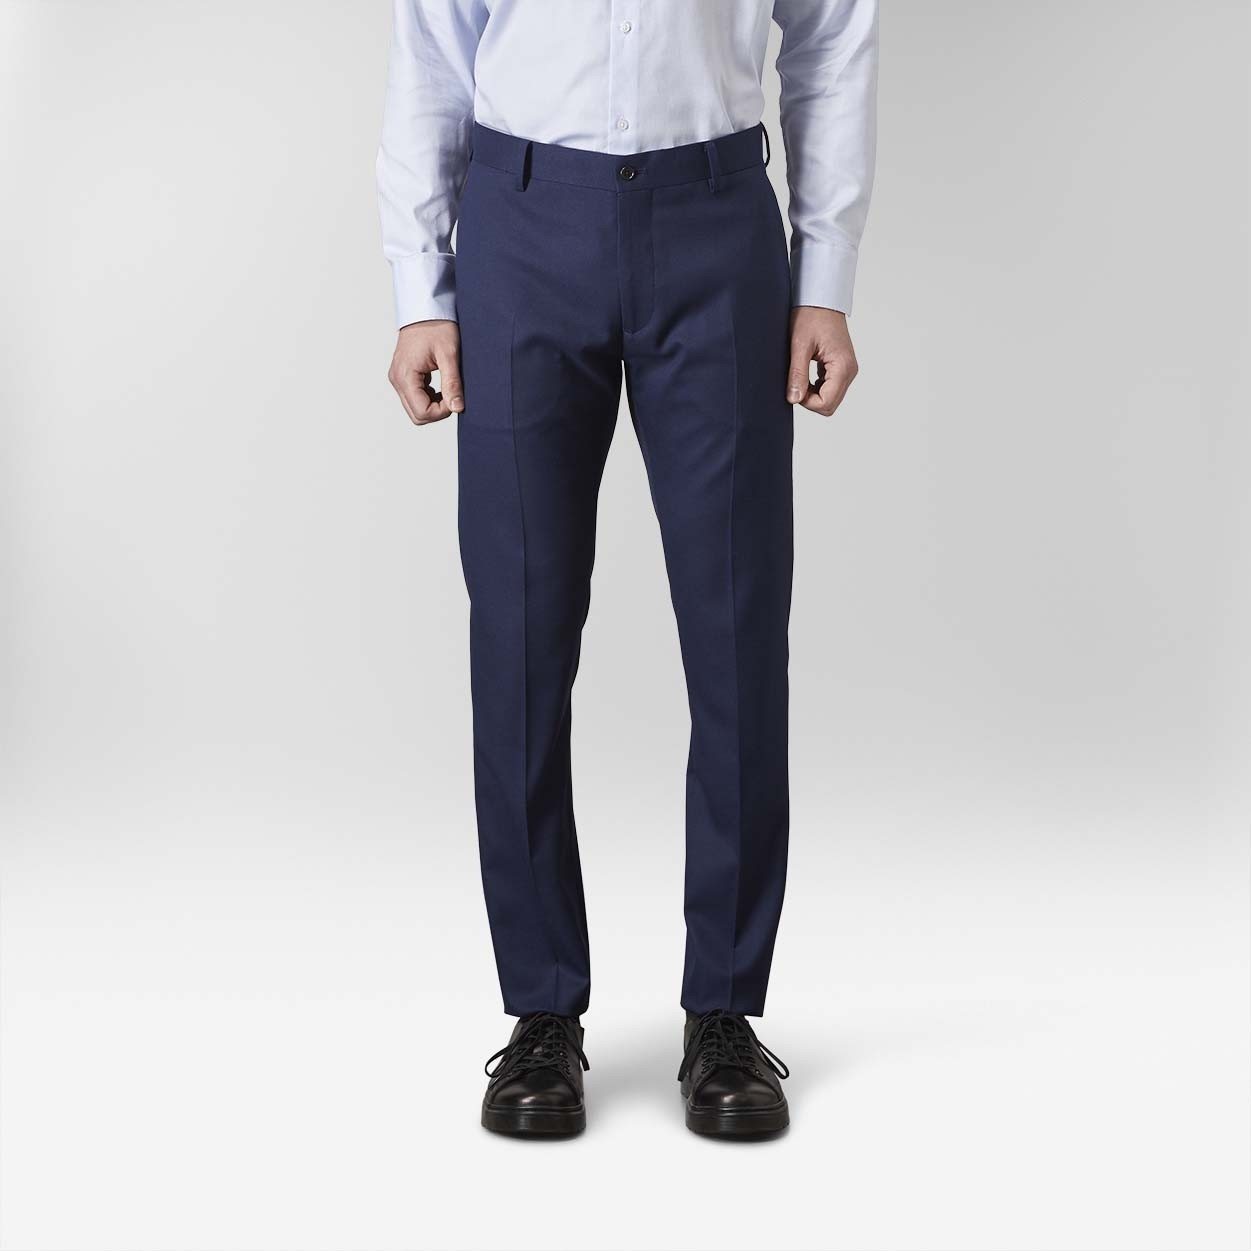 Stanton Twill Stretch Kostymbyxor Blå 5 | Riley | Brothers.se